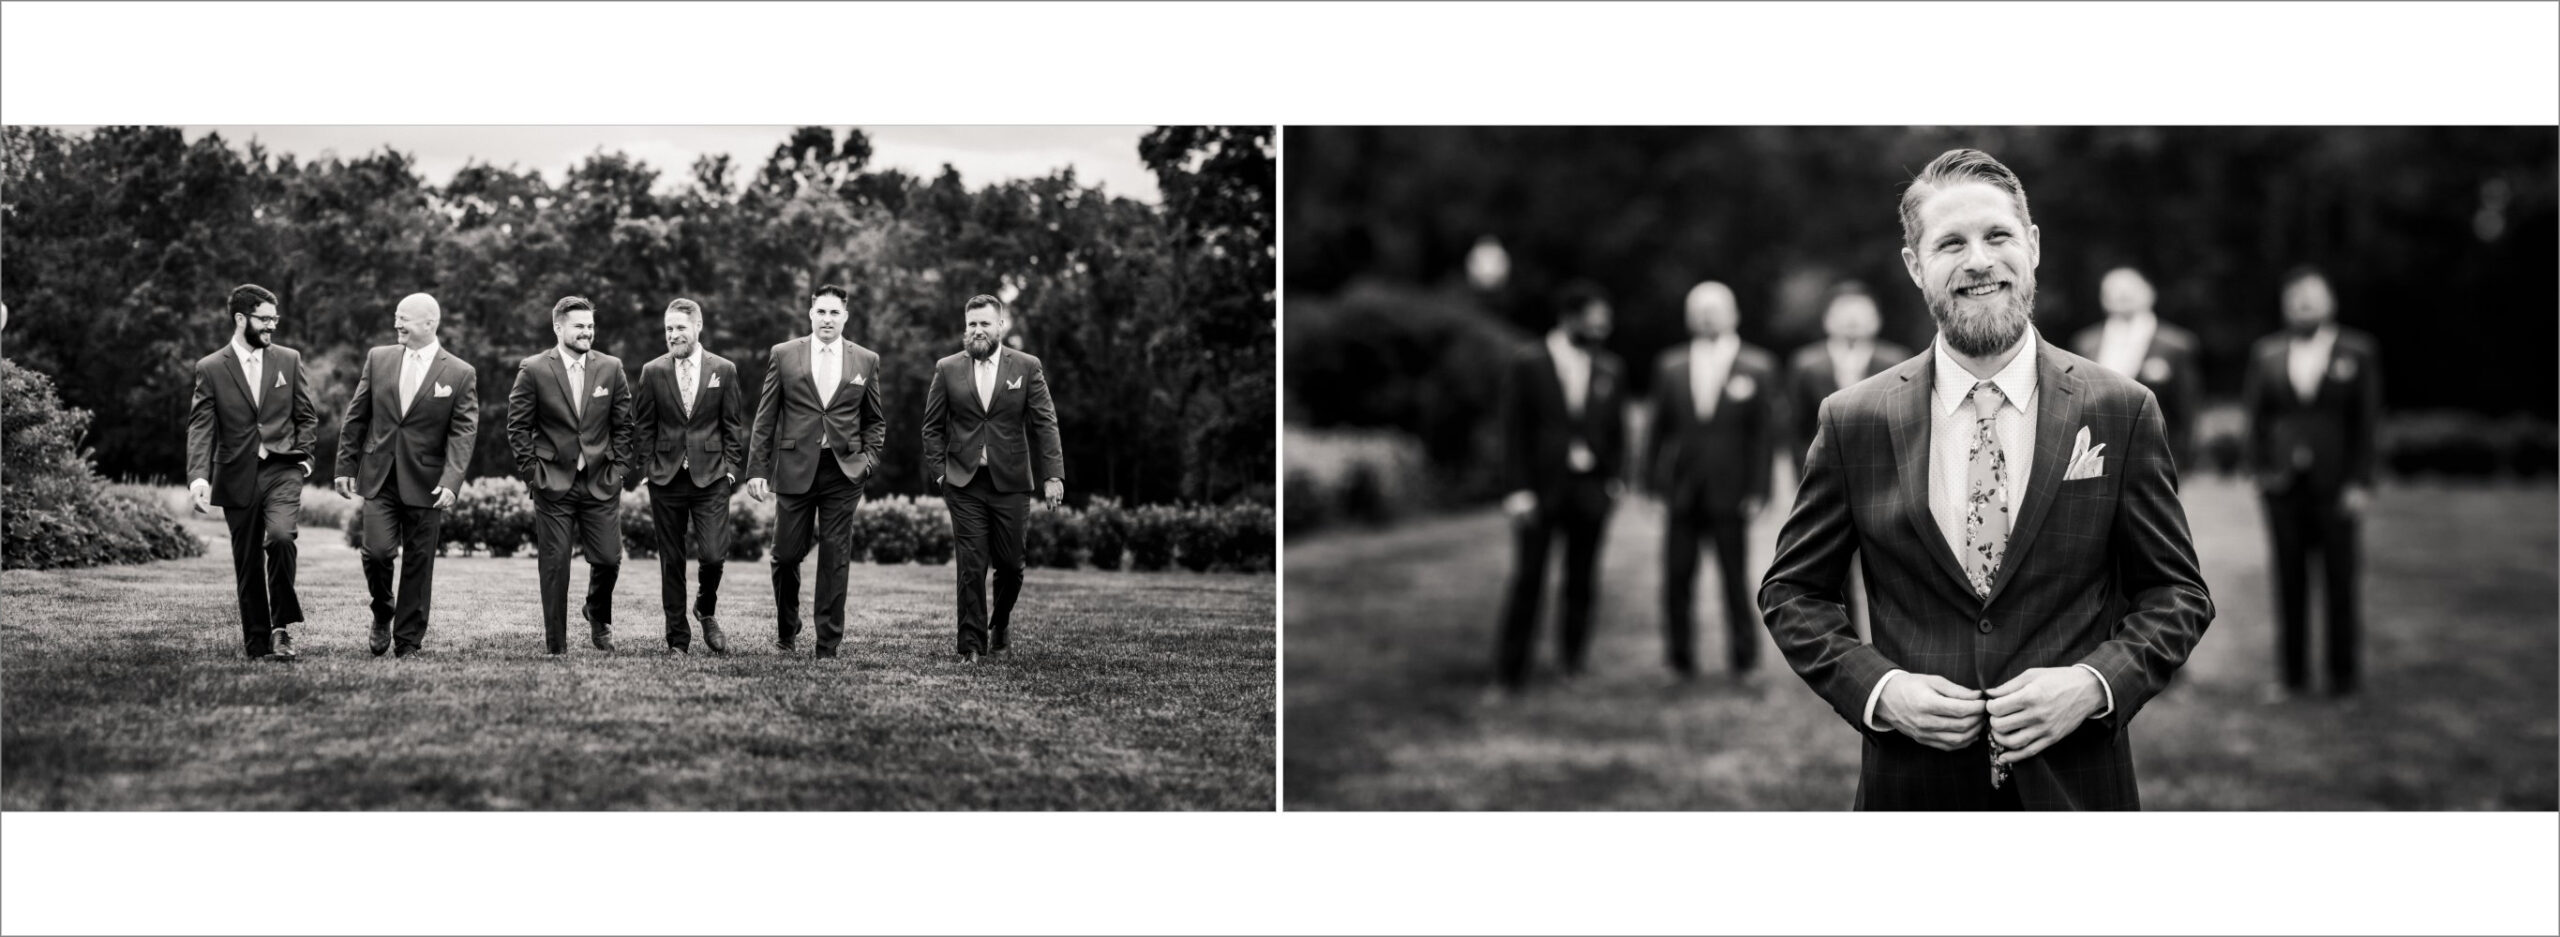 Groom photos in Black and White